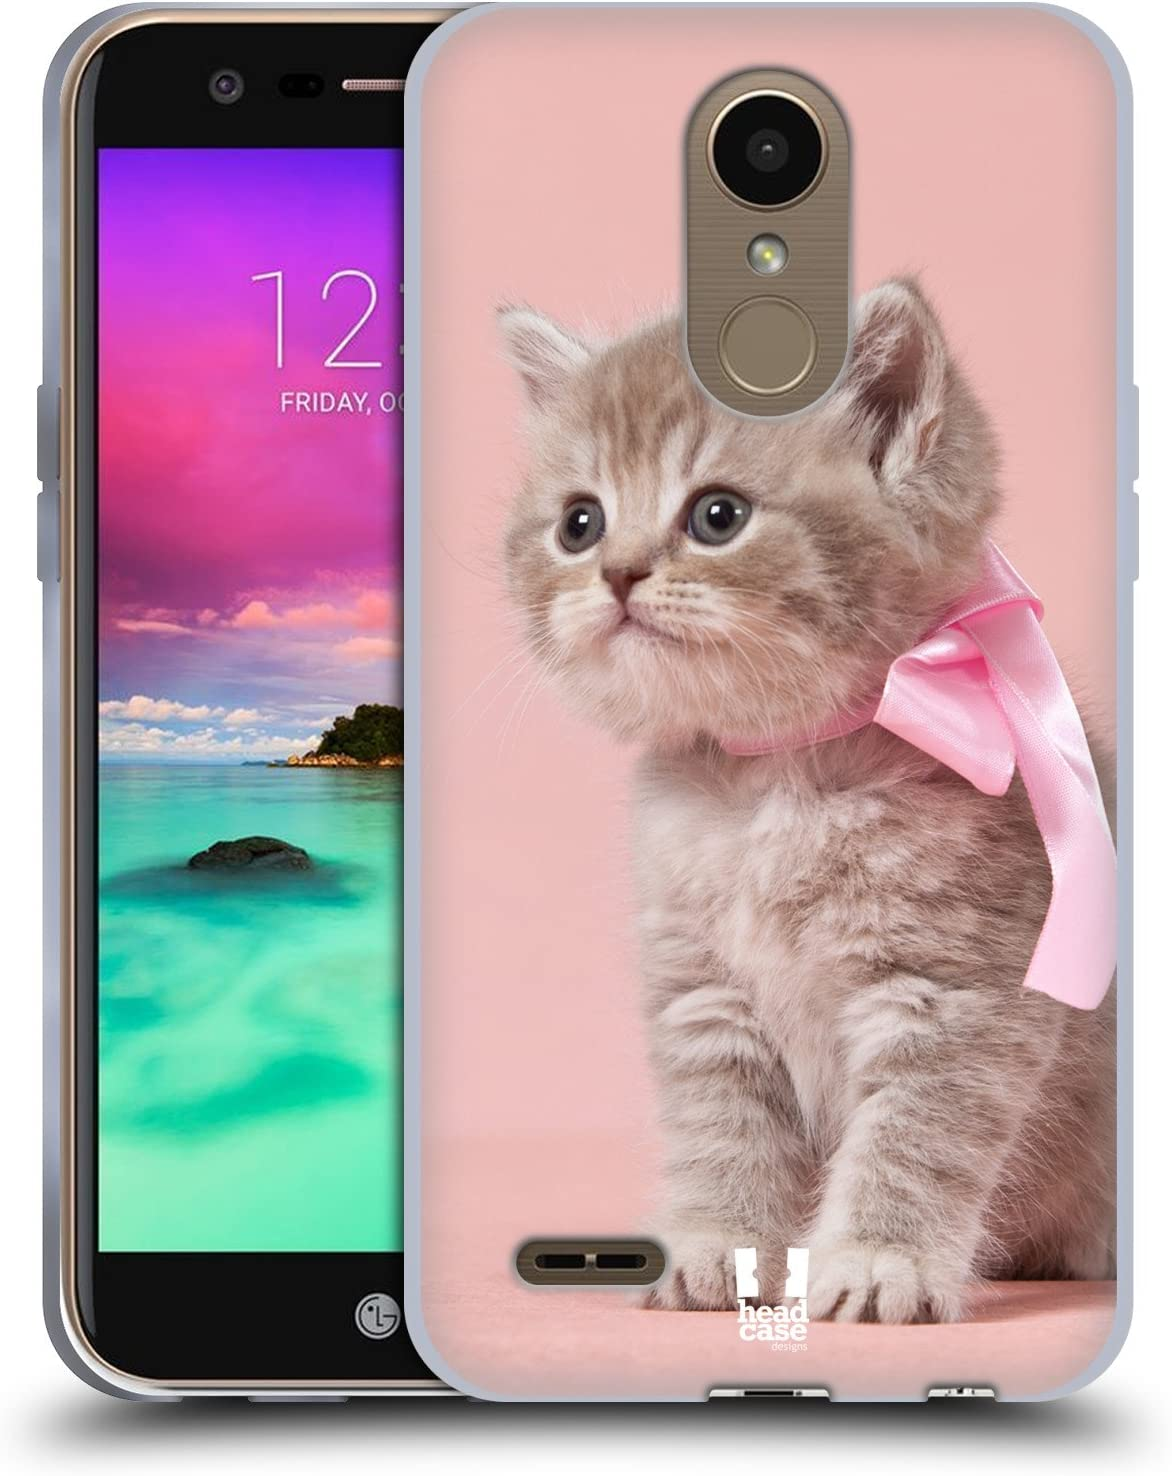 Case+Film Flexible Soft Gel TPU Protector Snap on Fits LG K20/M257 Harmony/VS501 K20V/Grace LTE L59BL/K10 2017/TP2608/K20 Plus/LV5 M250/ V5 Back Cover Pink Cute Cat/Kitty/Kitten with Bow